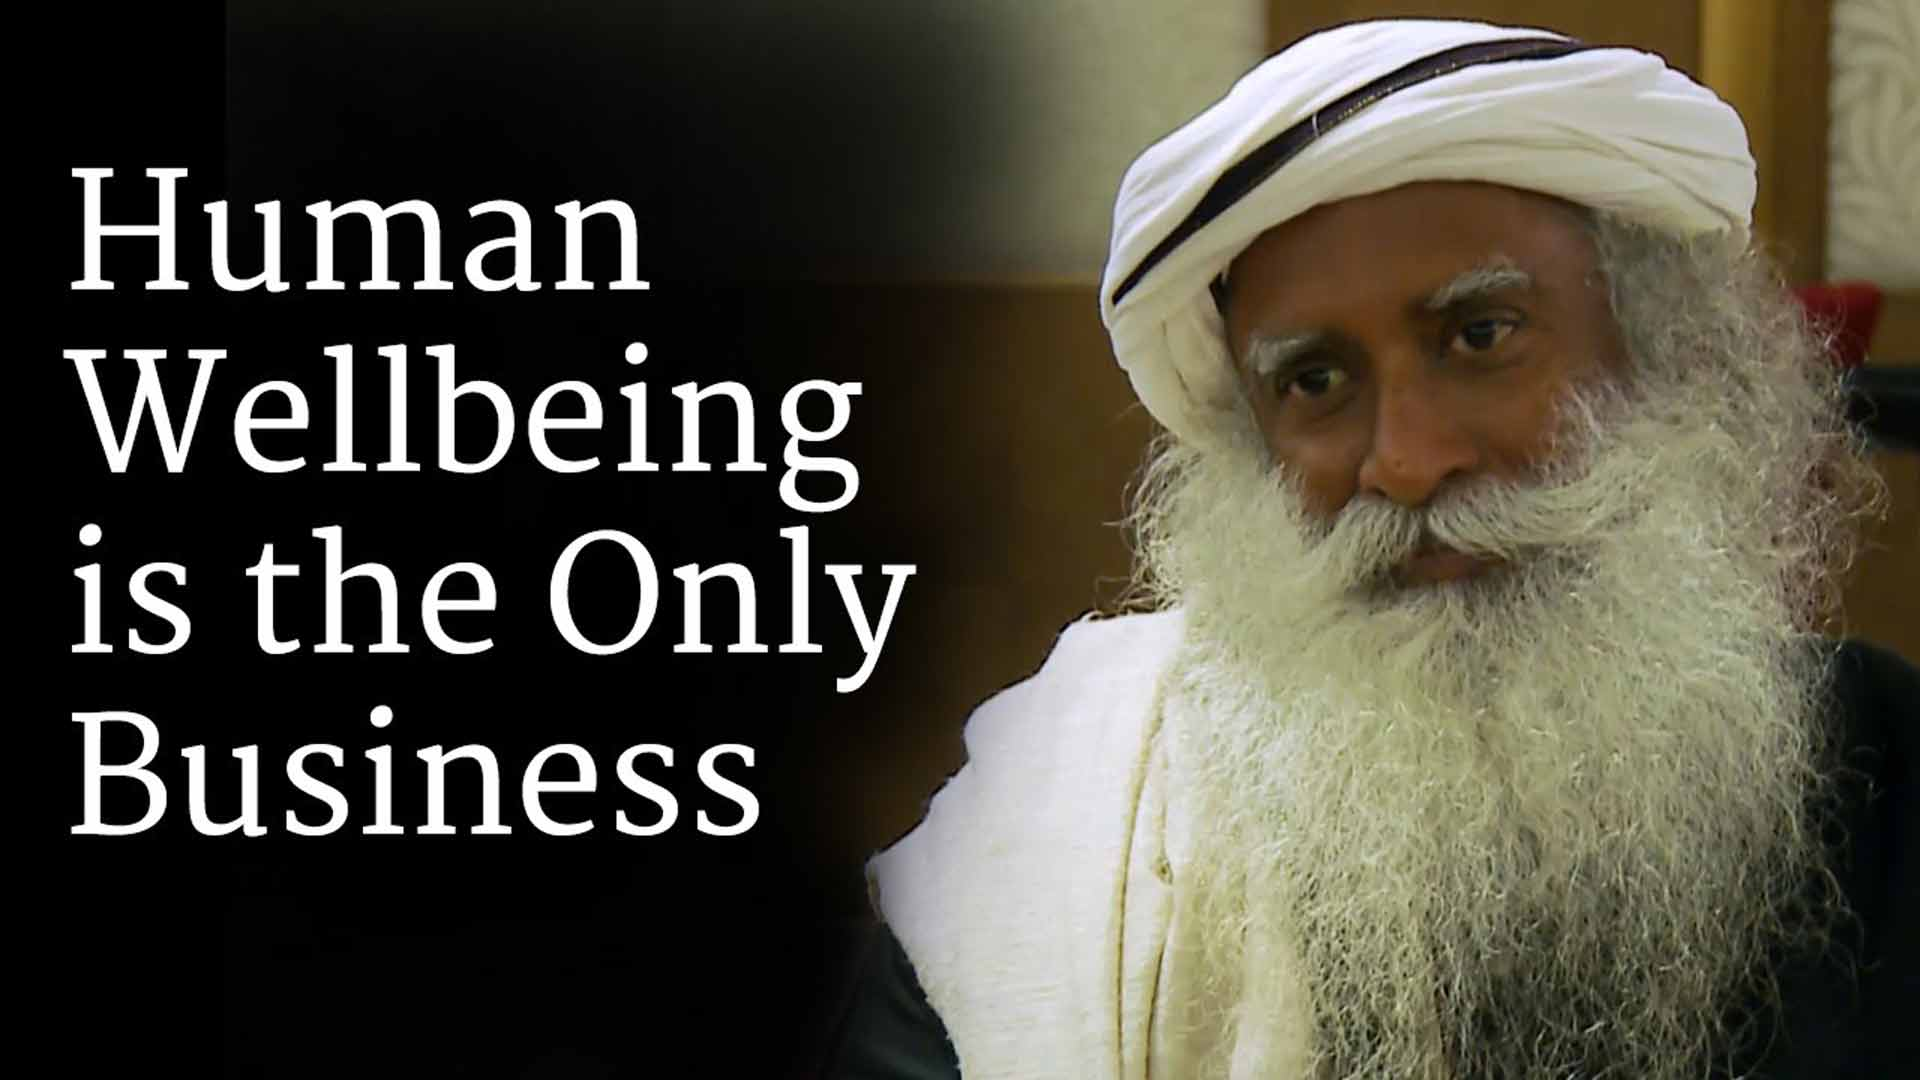 Human Wellbeing Is The Only Business